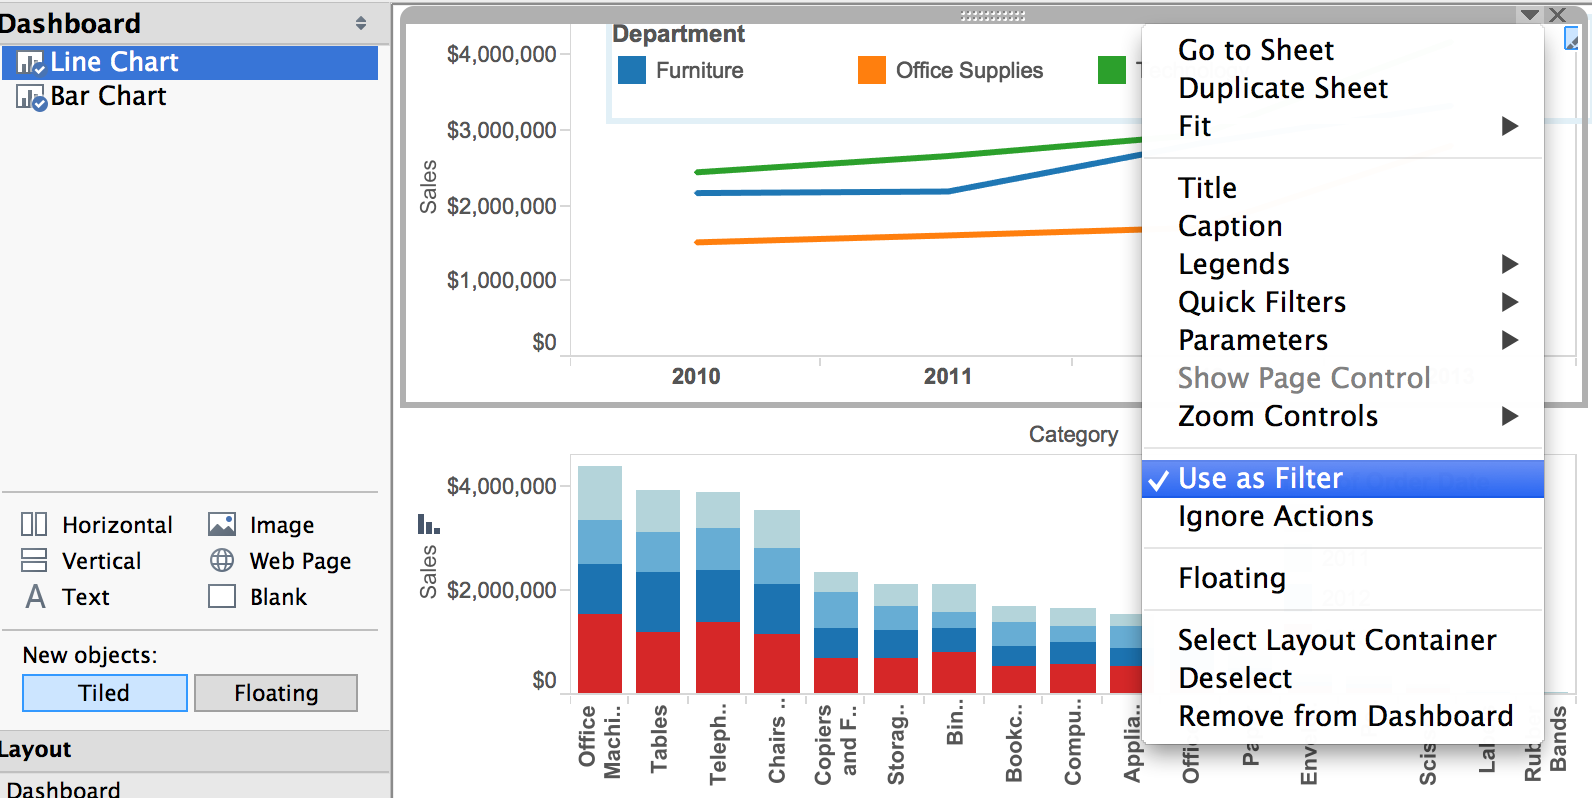 Paint By Numbers A Rough Guide To Tableau Dashboard Actions